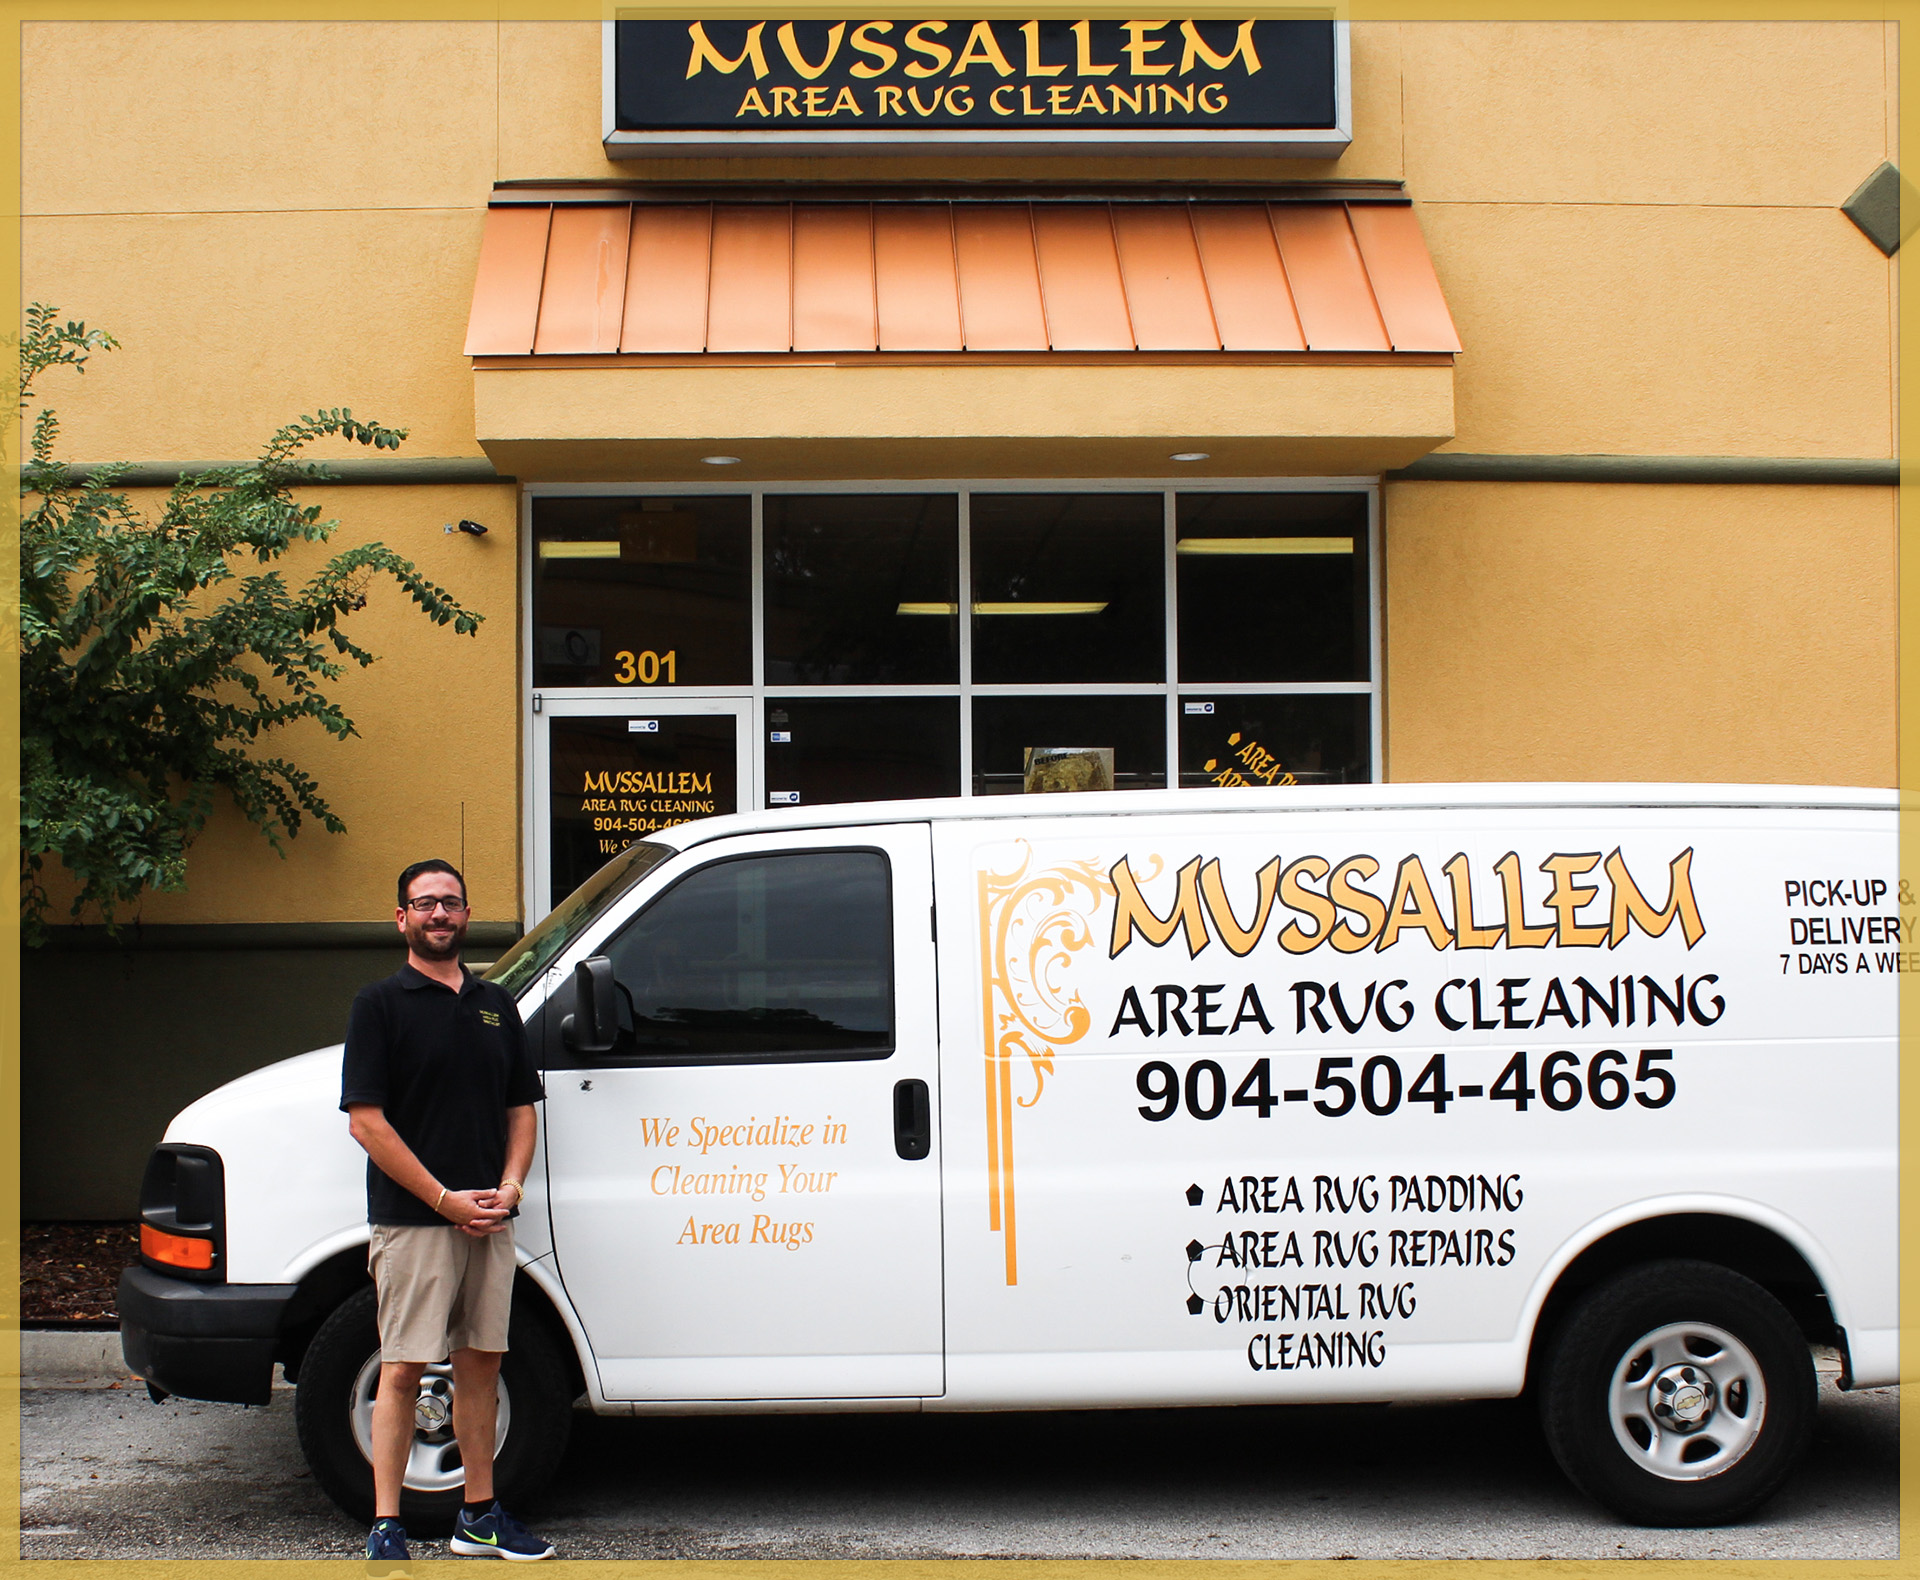 Professional Rug Cleaning & Area Rug